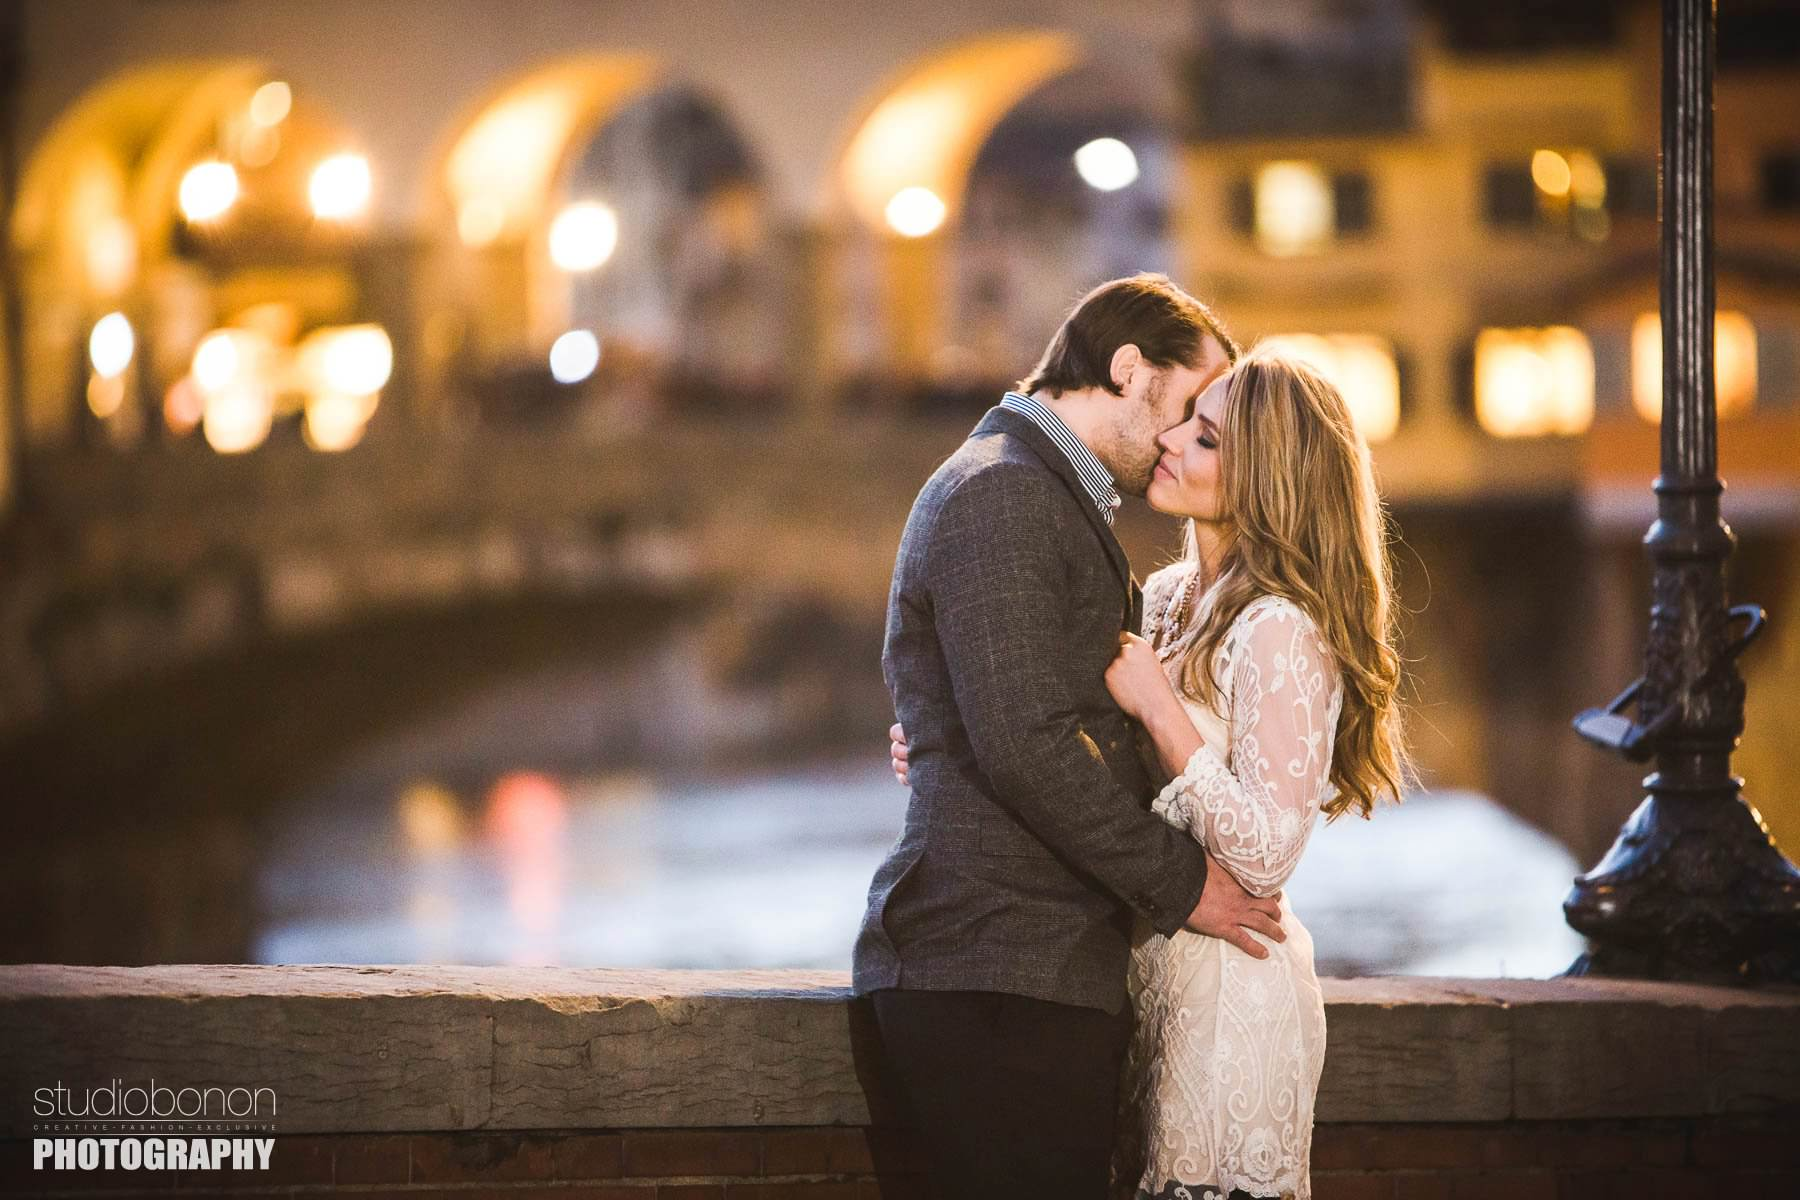 Couple portrait photo shoot in Florence. Photo by Studio Bonon Photography.